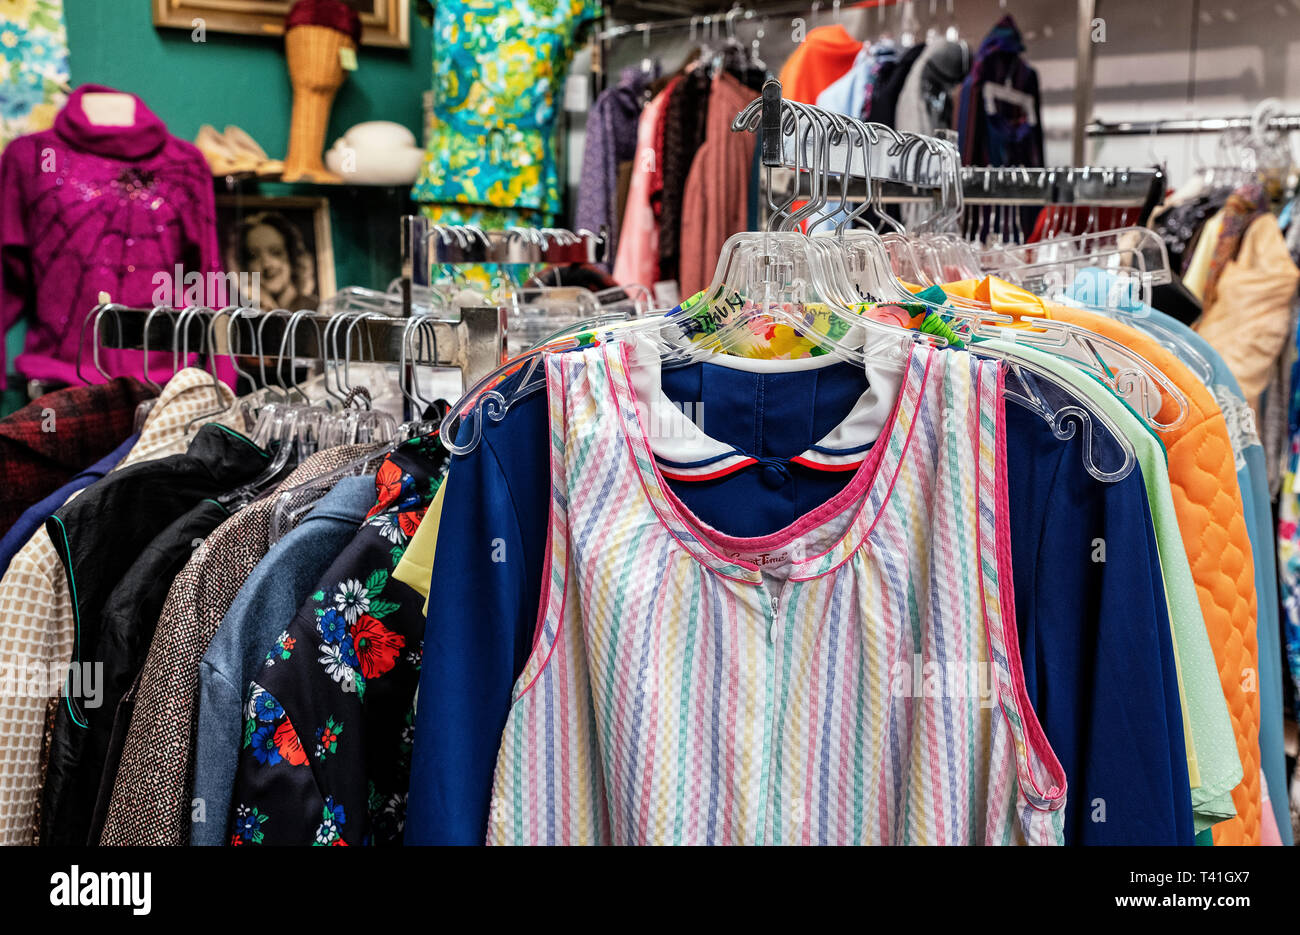 Second hand clothing store. - Stock Image